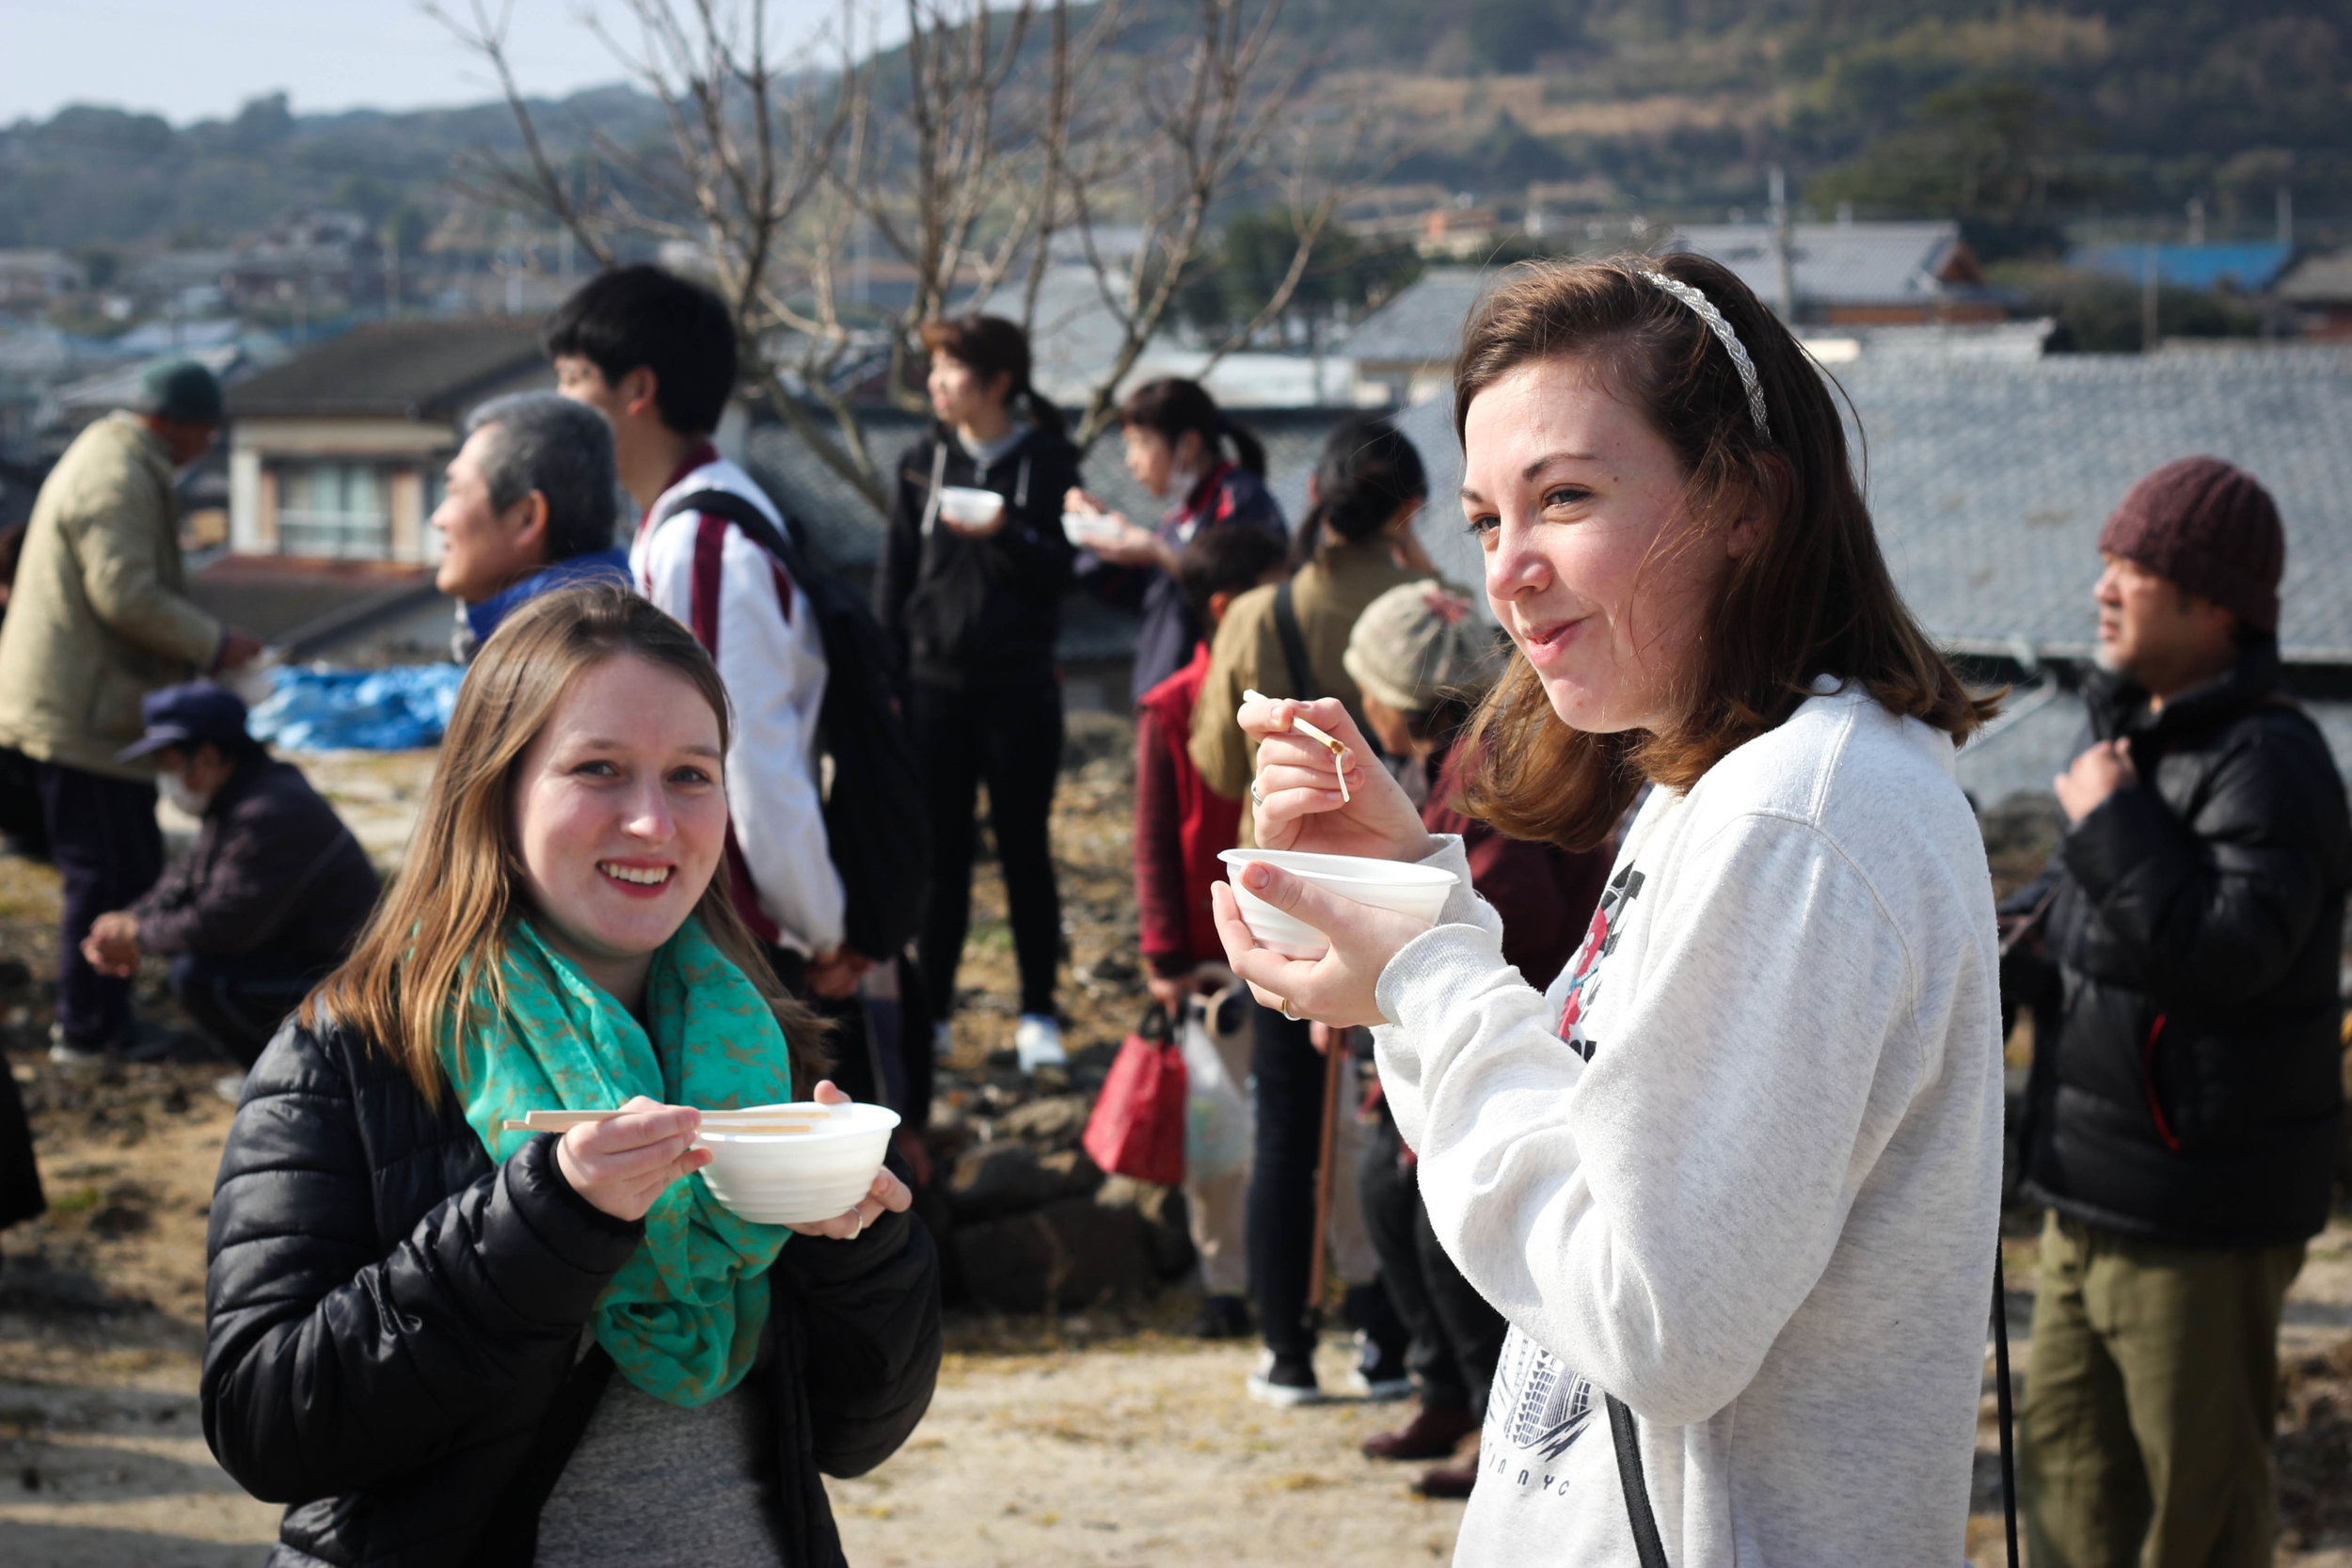 Erica and Jess enjoying some hot soup prepared by the people of Sakiyama.